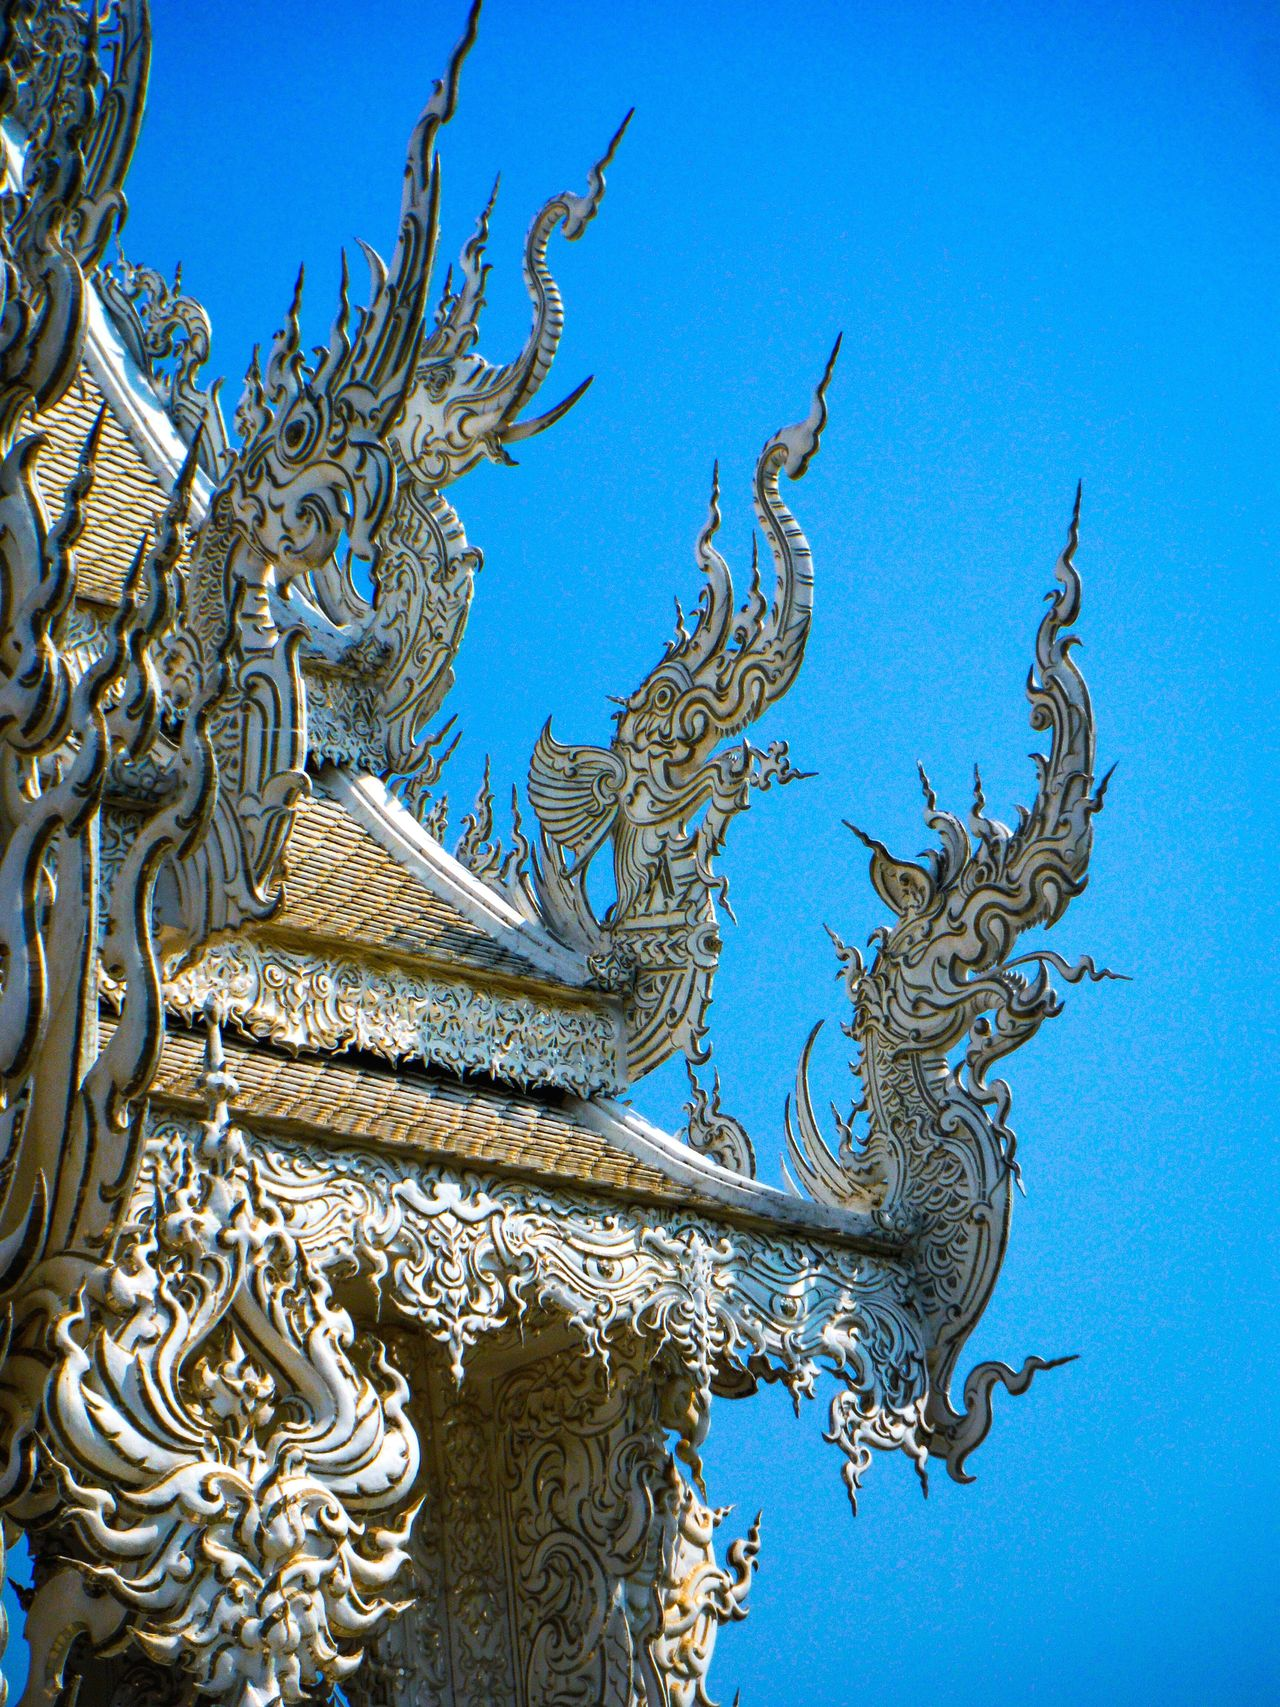 Wat Rong Khun Watrongkhun Chiang Rai Chiang Rai, Thailand Chiangrai Clear Sky Blue White Temple Temple Temple - Building Temple Architecture Templephotography Temple Thailand Temple Art Architectural Feature Creativity Carving - Craft Product Sky Dragon Chinese Style Chinese Art Chinese Dragon Chinese Architecture Curves And Lines Chinese Roof